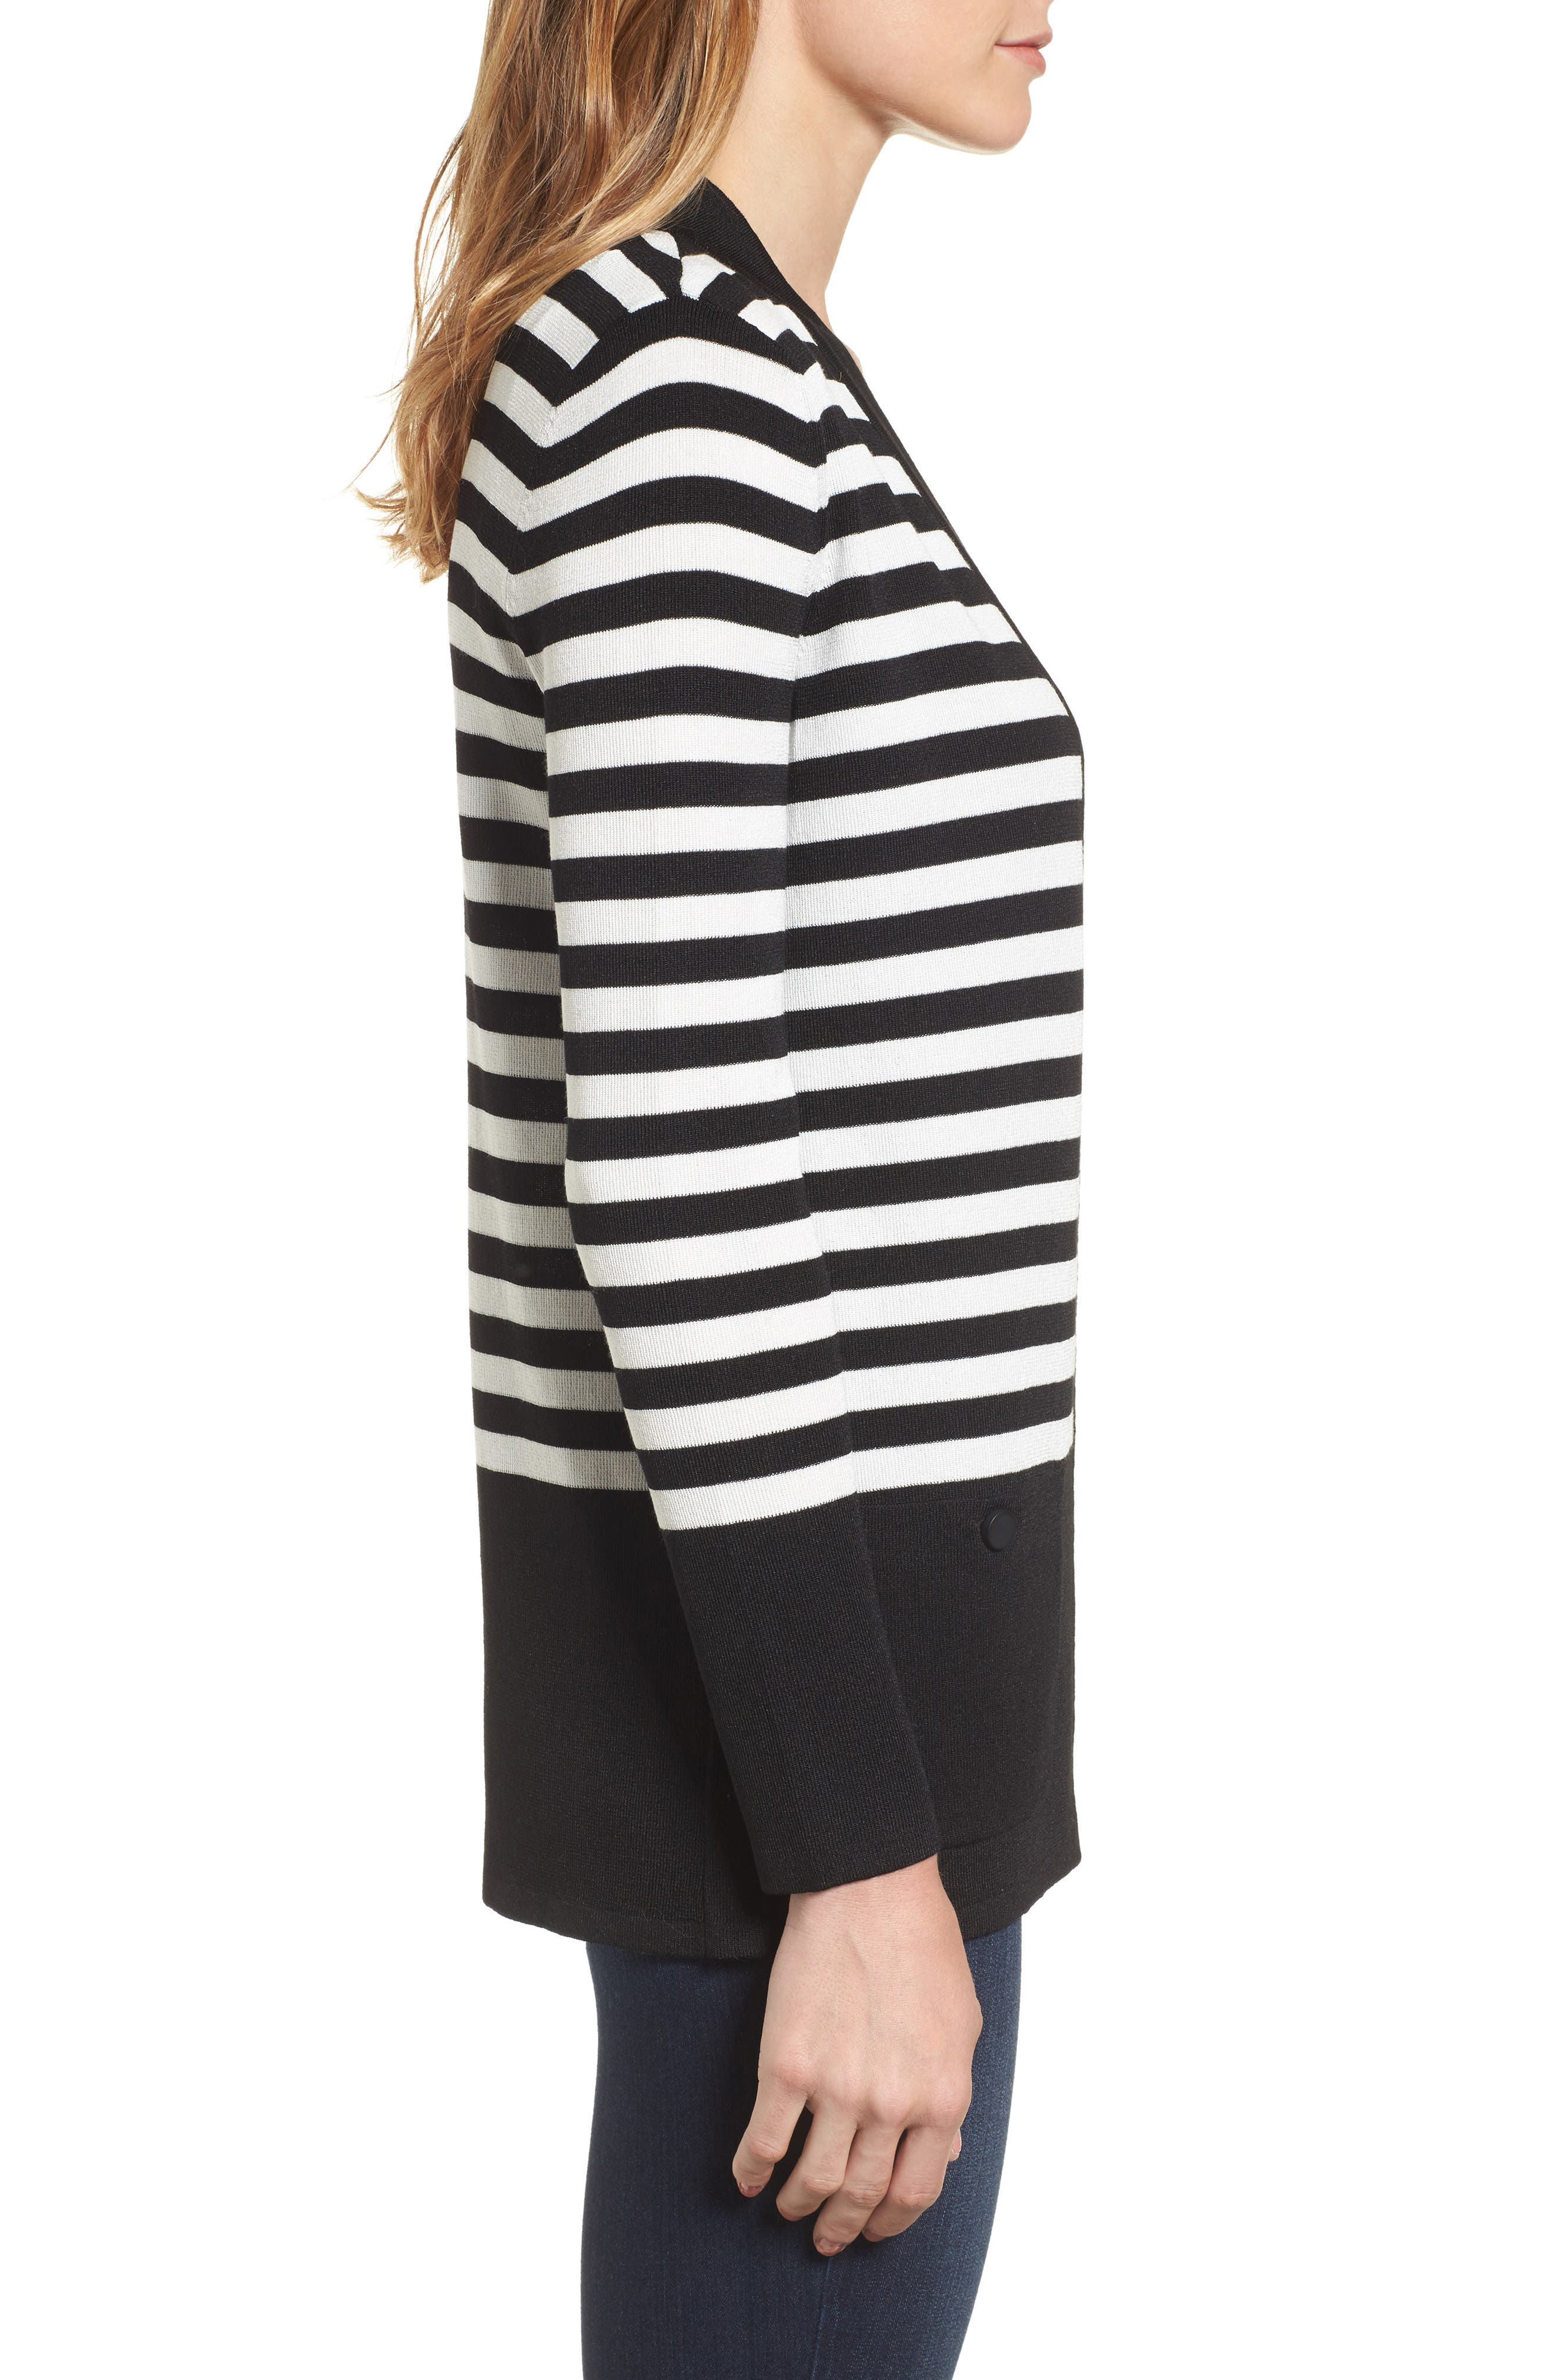 Patch Pocket Cardigan,                             Alternate thumbnail 3, color,                             BLACK/ WHITE